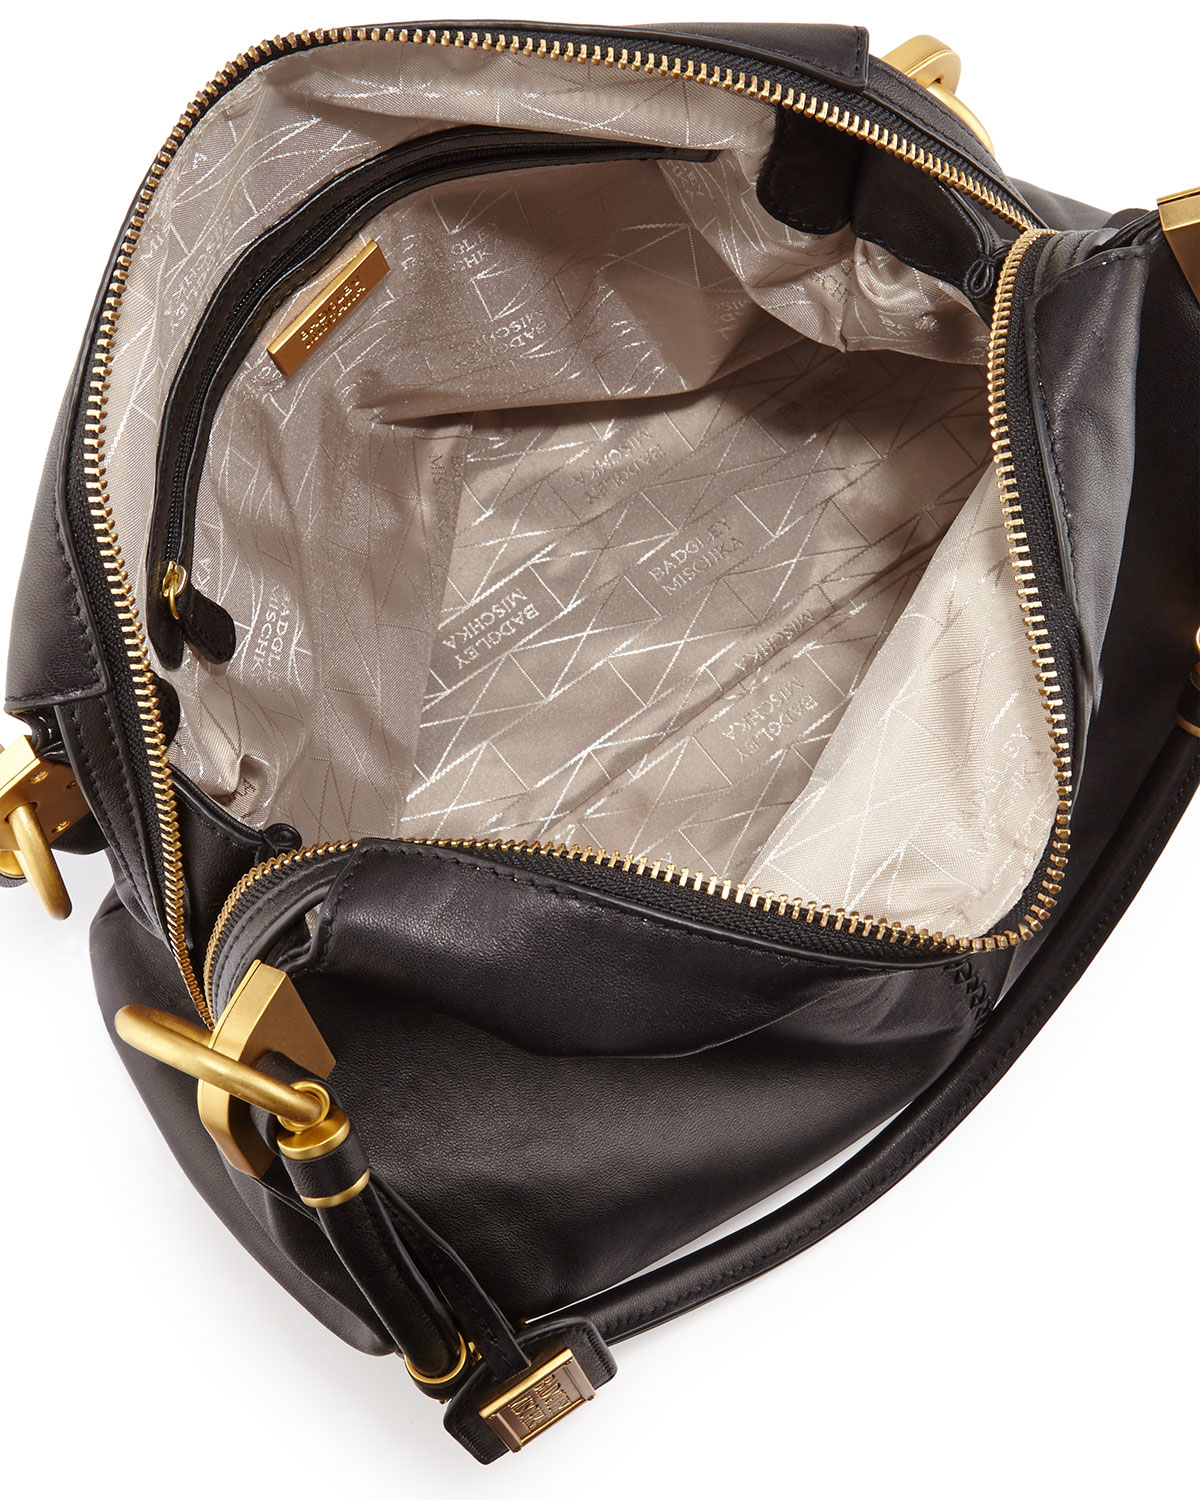 Badgley Mischka Bags, Handbags & Purses - bagbunch.com